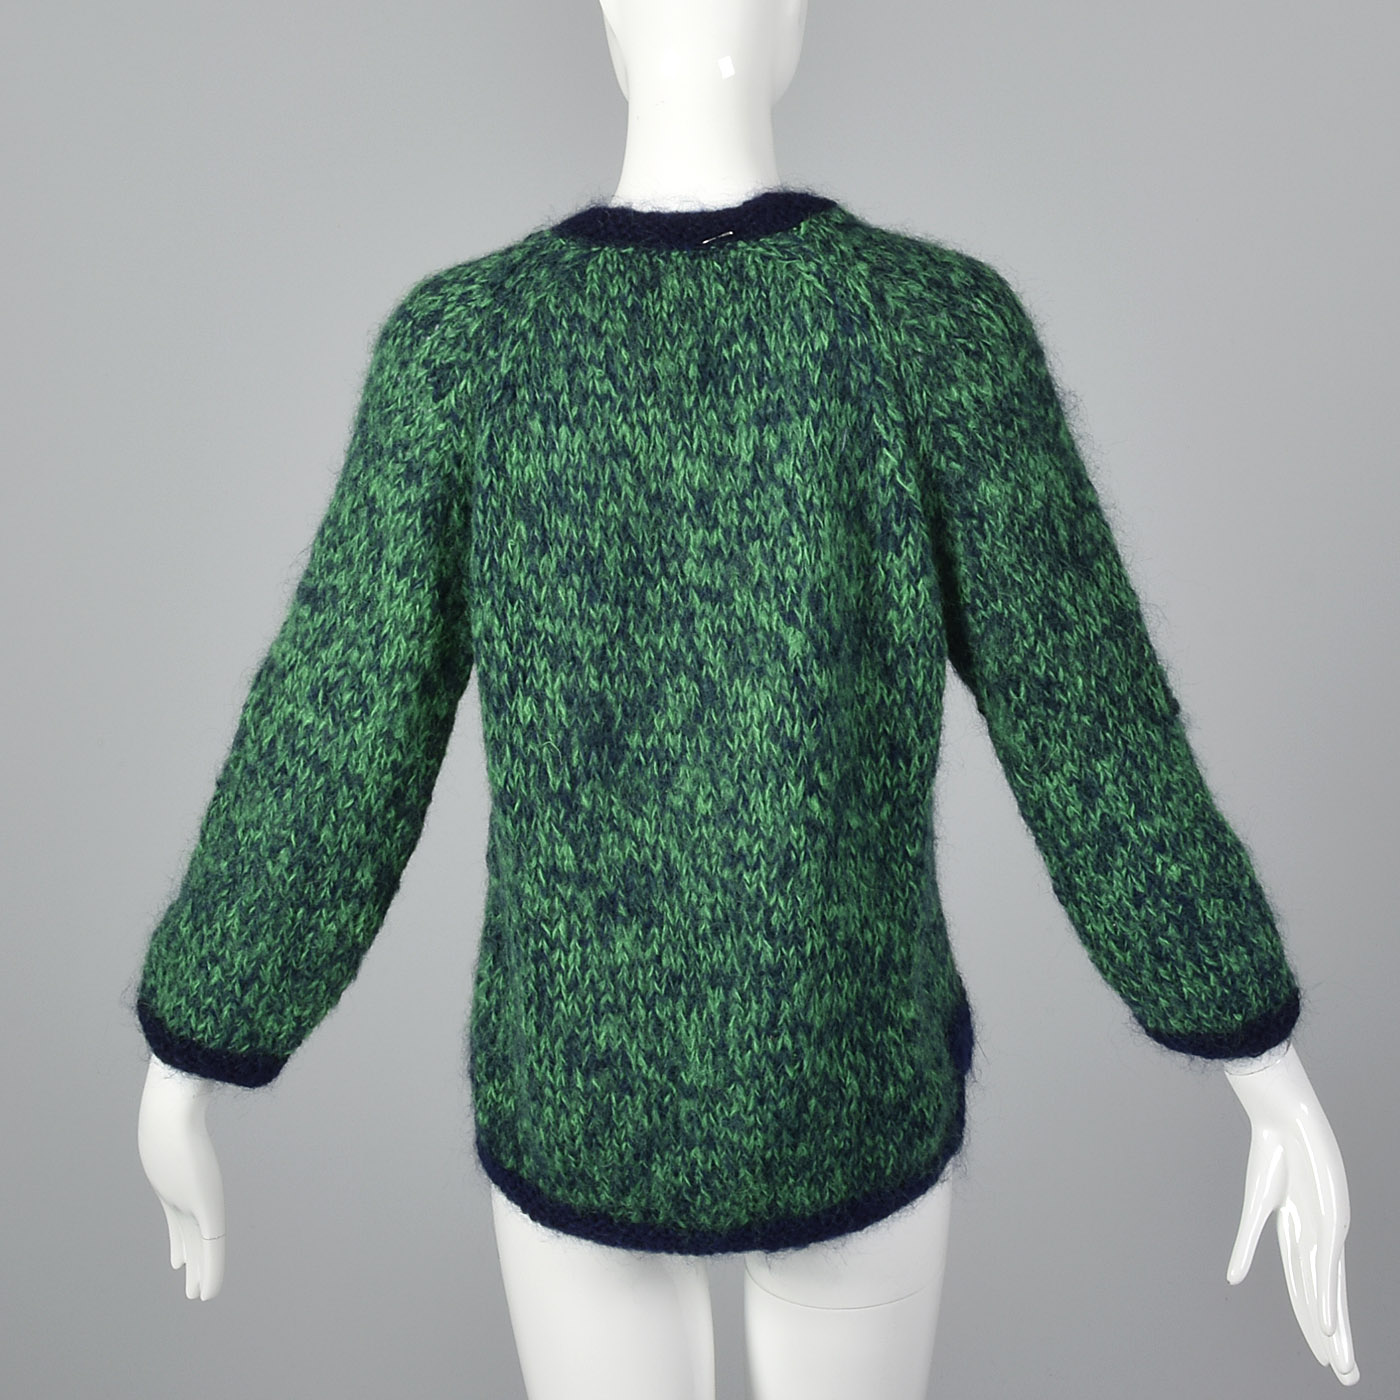 1950s Hand Knit Mohair Sweater in Green and Navy